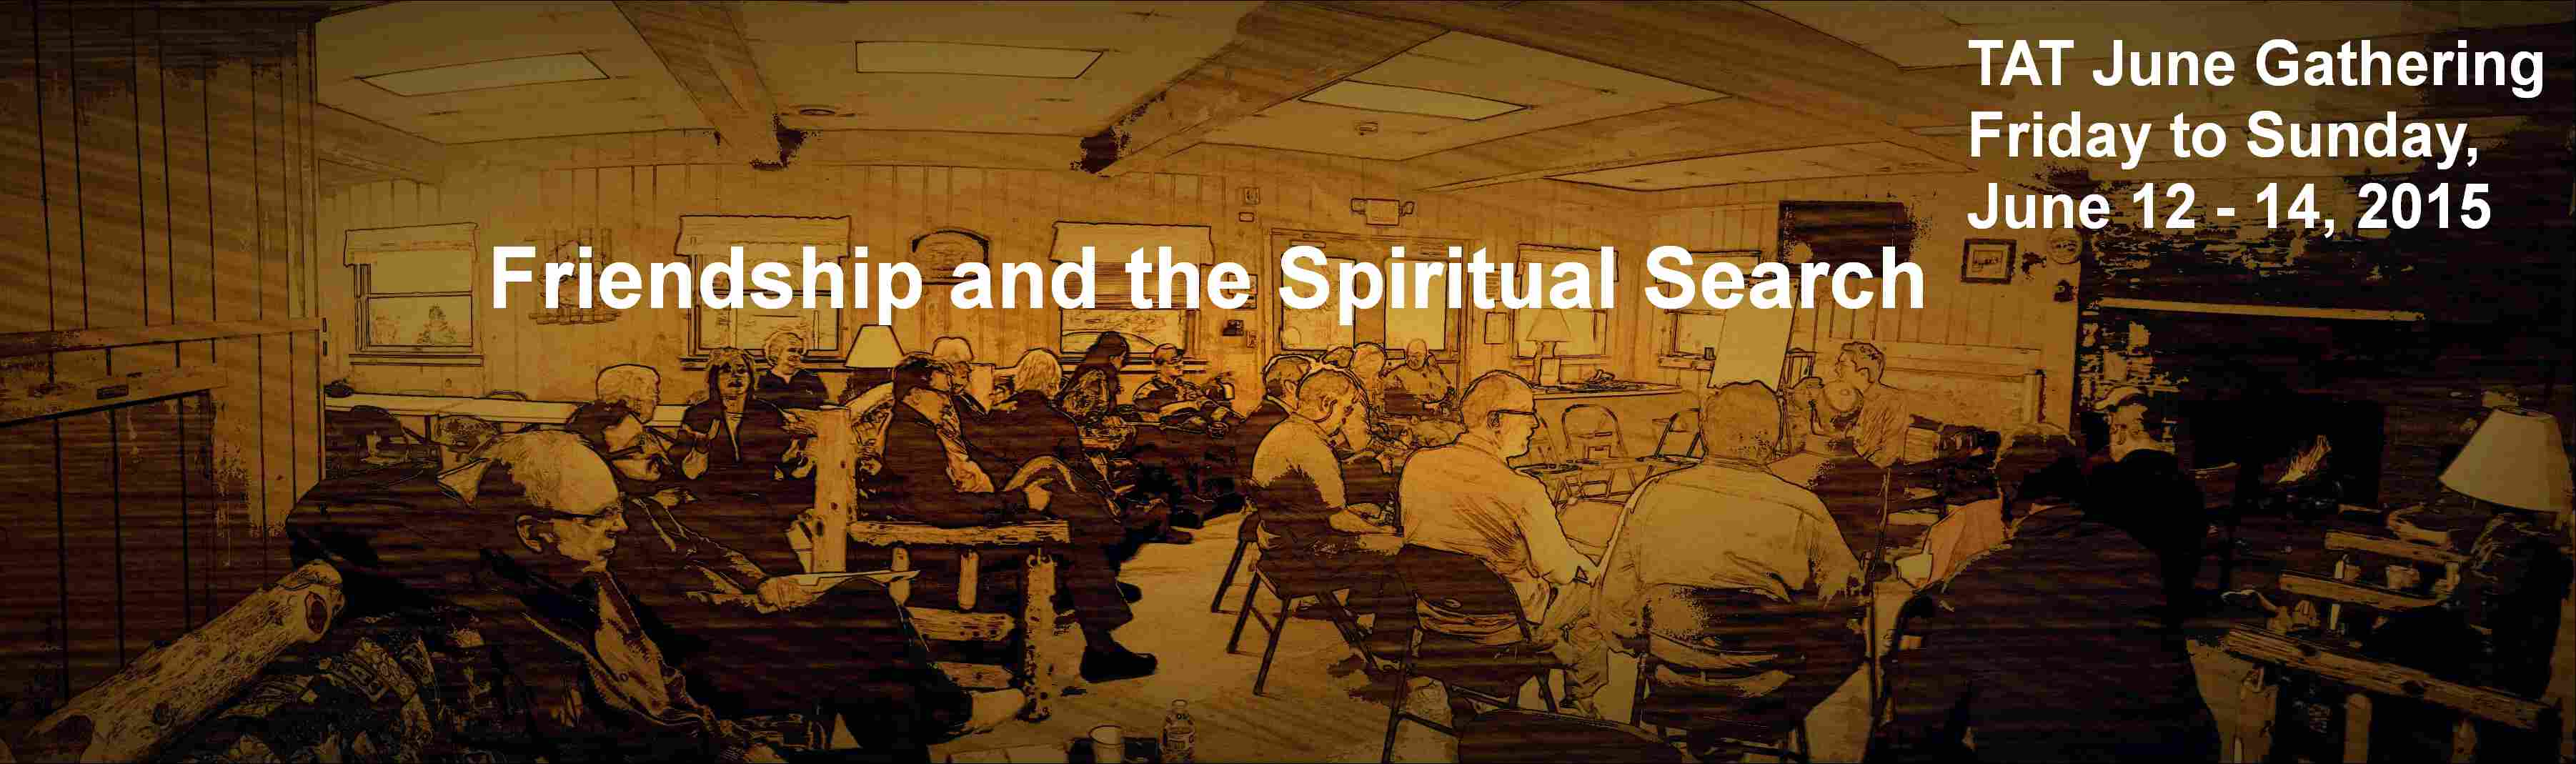 TAT June Gathering 2015: Friendship and the Spiritual Search. June 12-14, 2015.